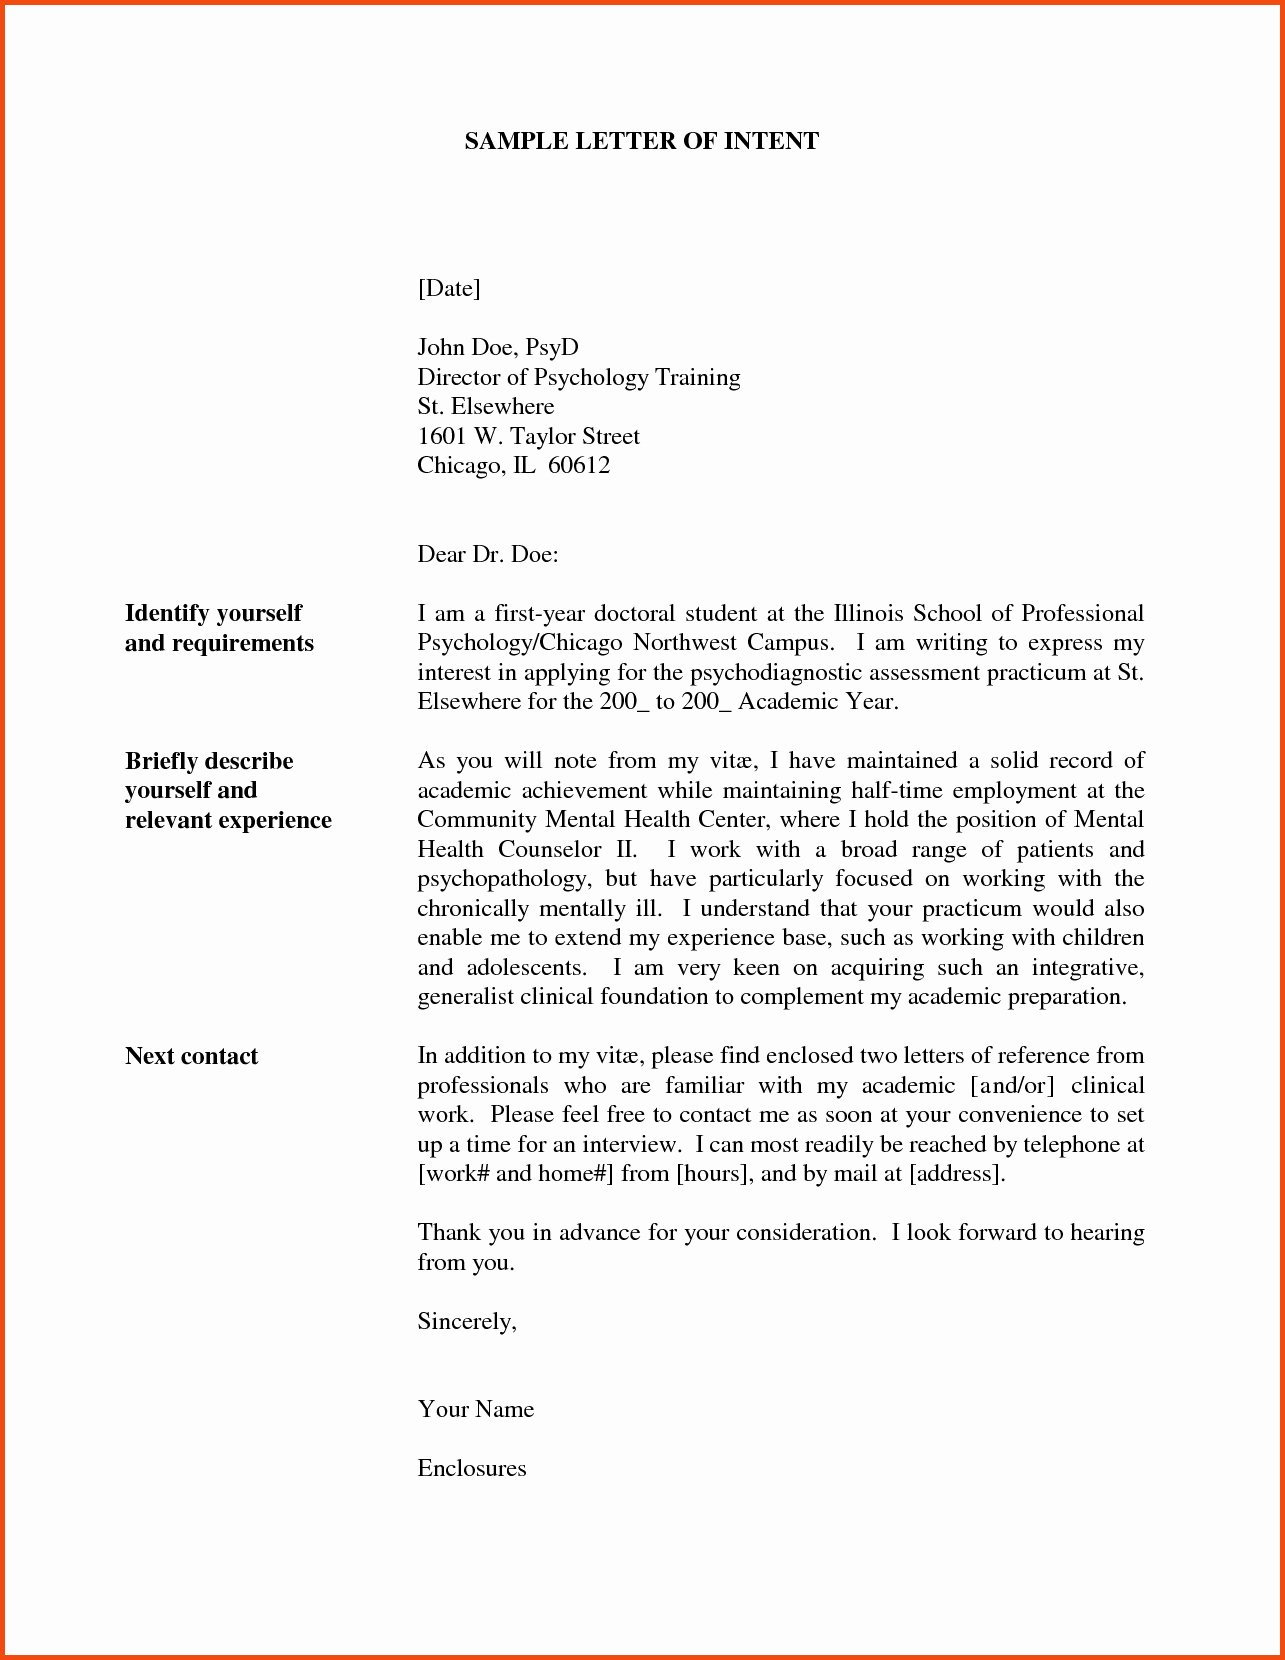 Letter Of Intent for Promotion Best Of Letter Intent for Promotion Template Collection